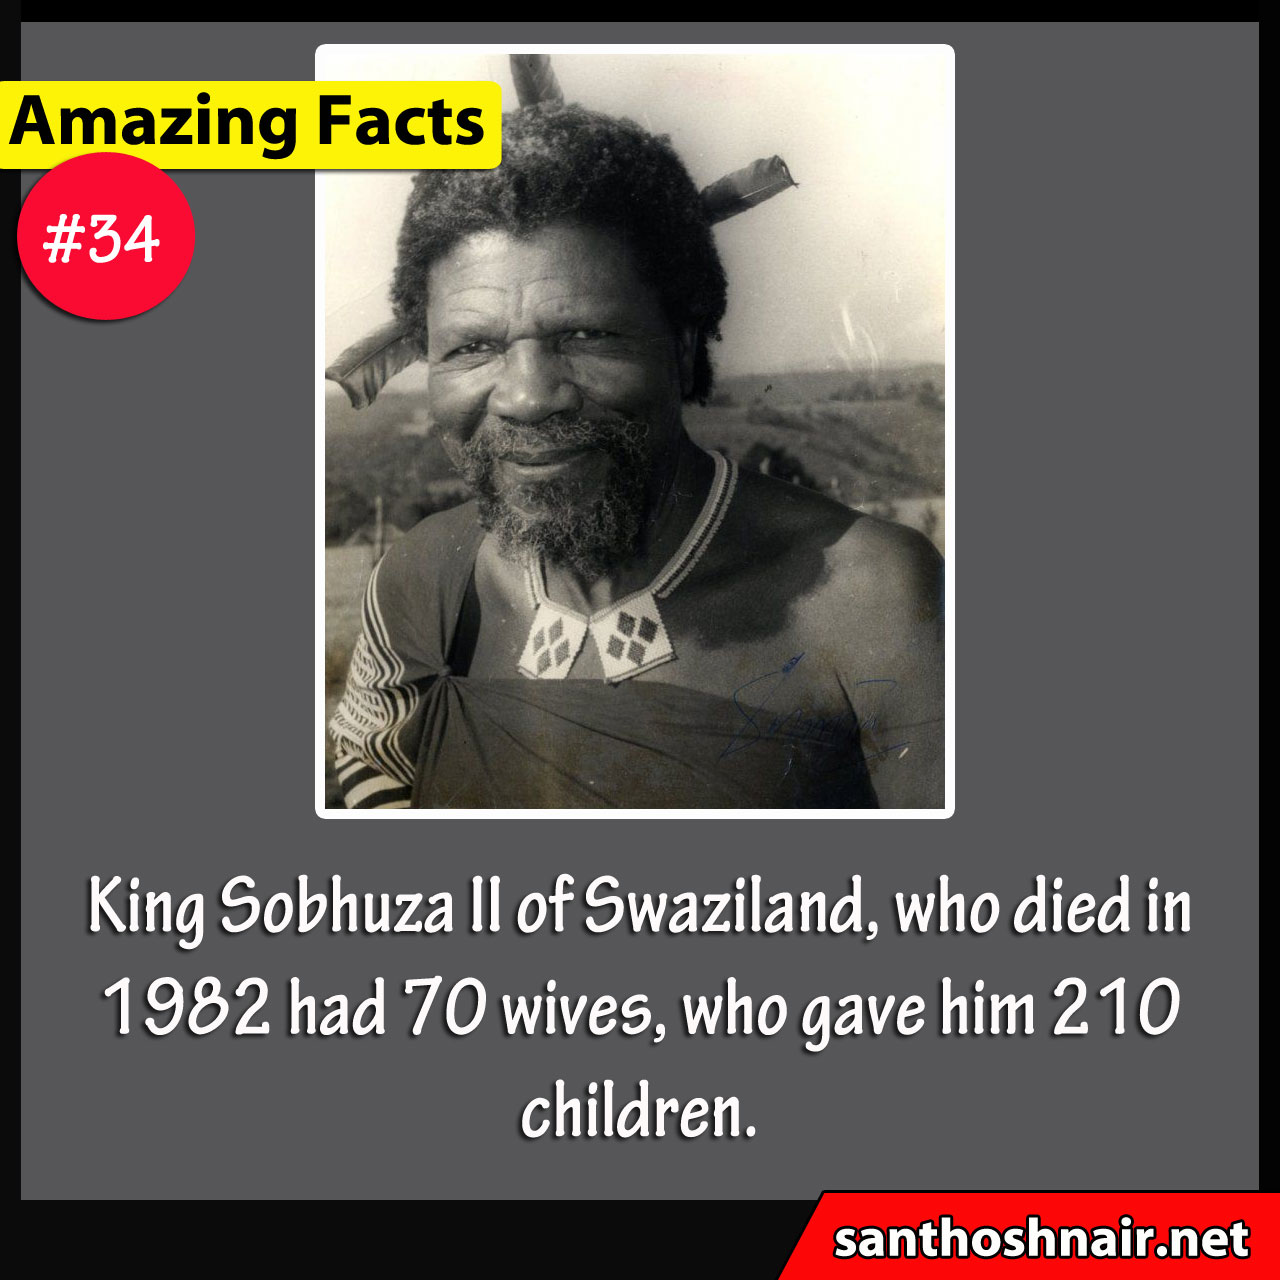 Amazing Facts #33 - King Sobhuza II